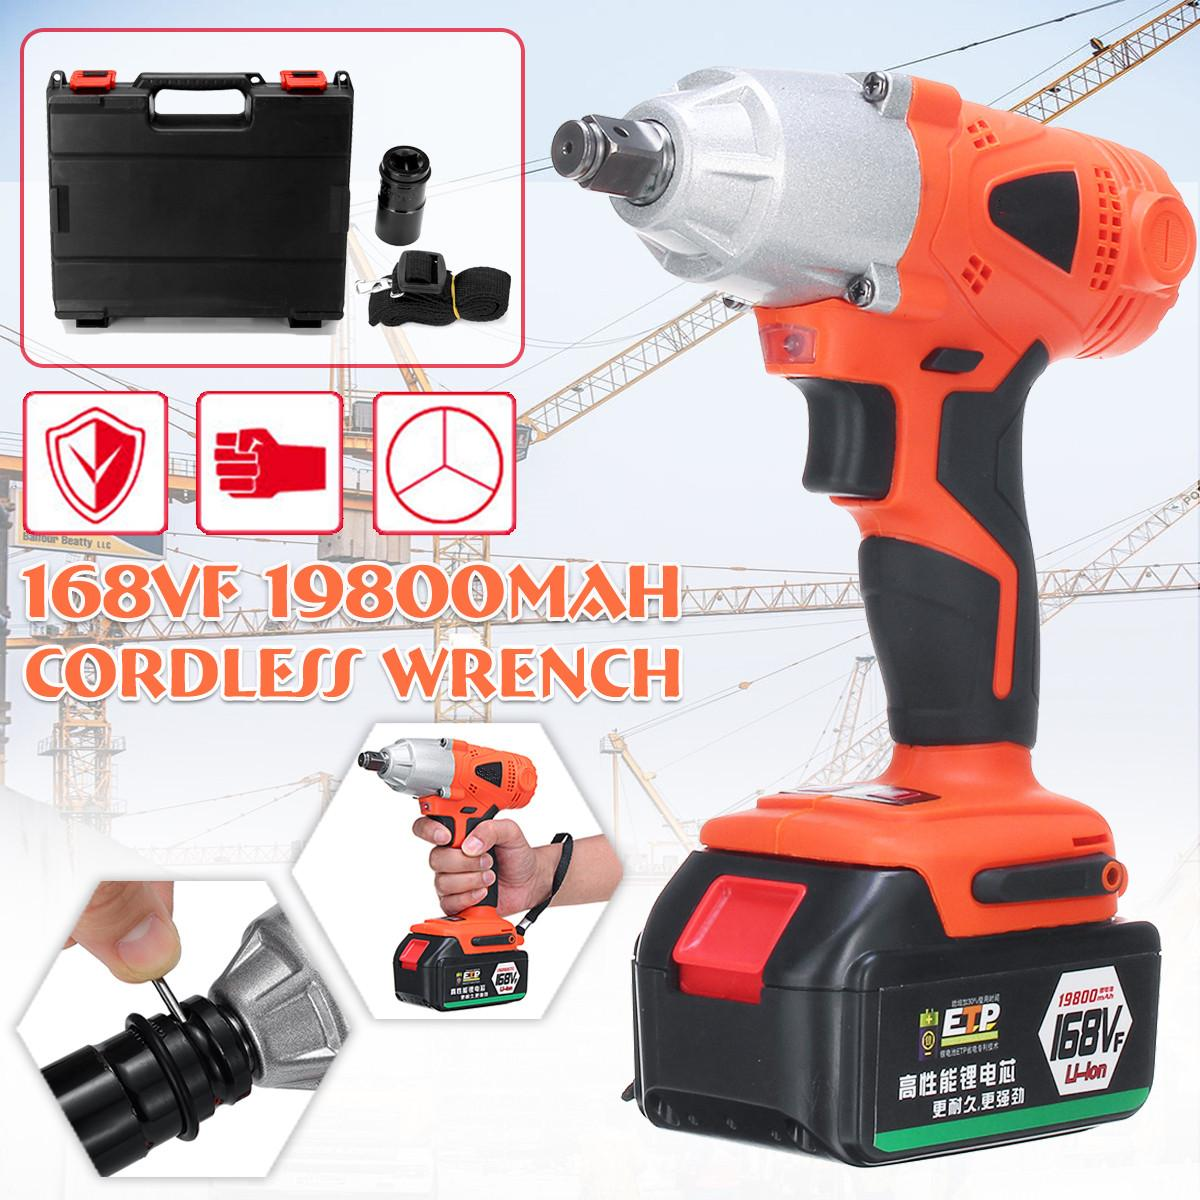 19800MAH 168VF Cordless Brushless Electric Wrench Stepless Speed Adjustable Electric Tool With LED Light Rechargeable Battery